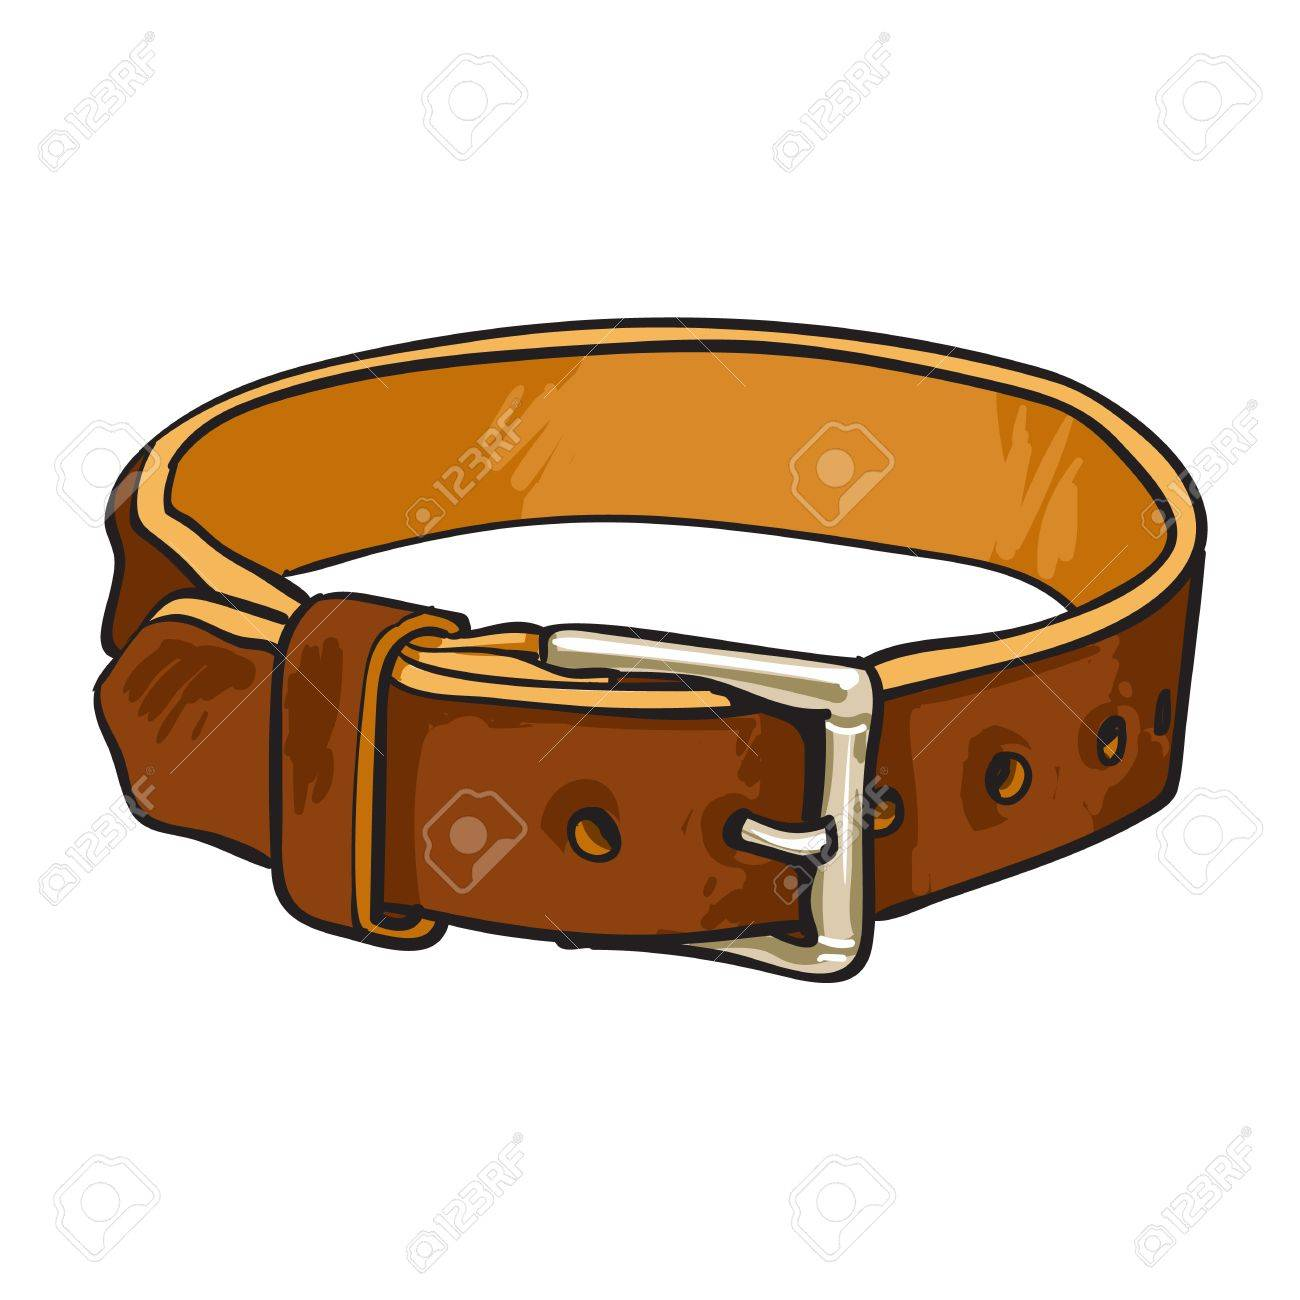 1300x1300 Pet, Cat, Dog Brown Leather Collar With Metal Buckle, Sketch